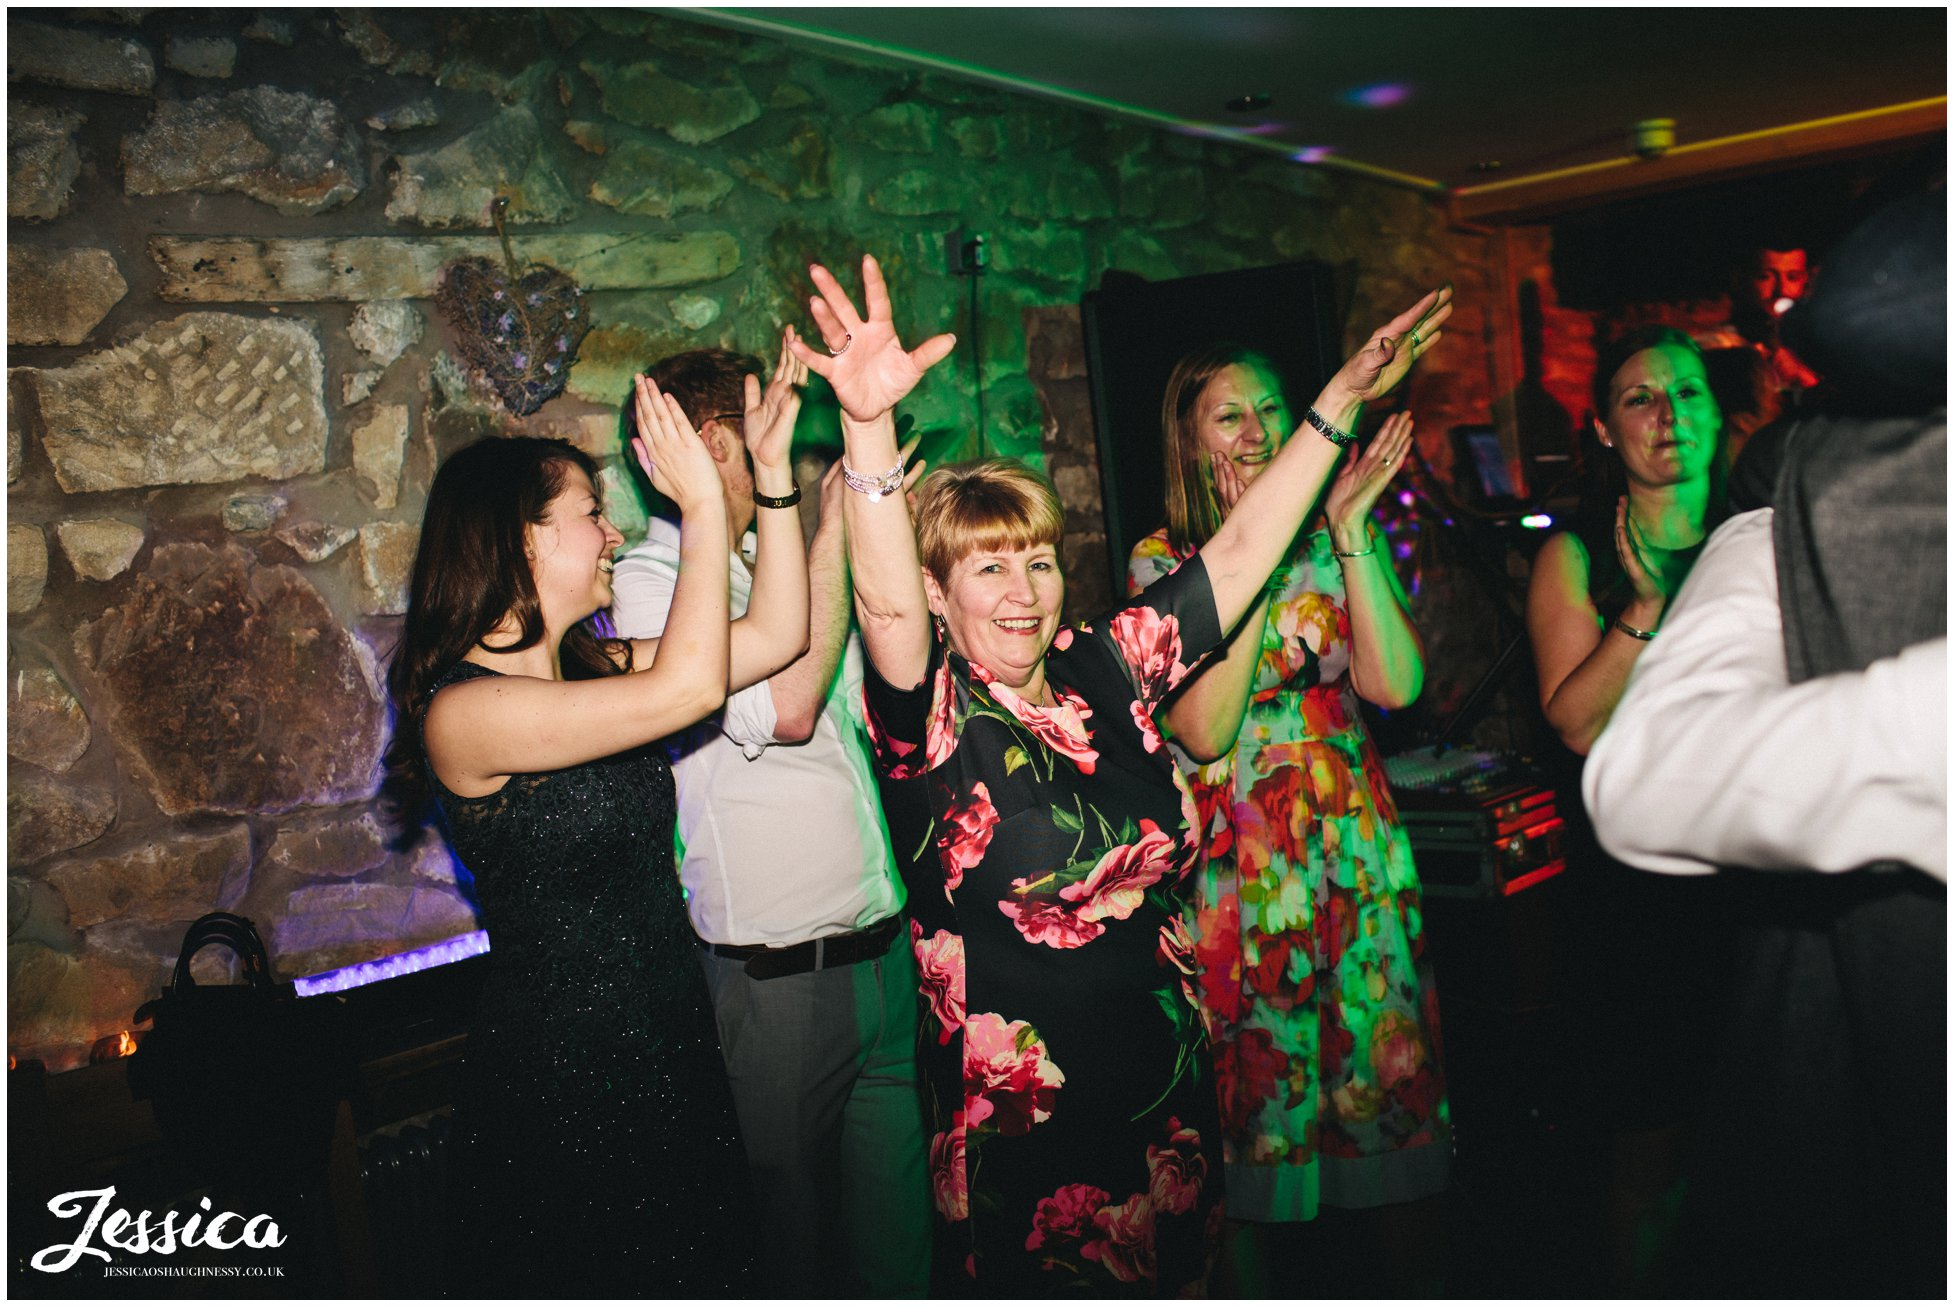 guests dance with their hands in the air